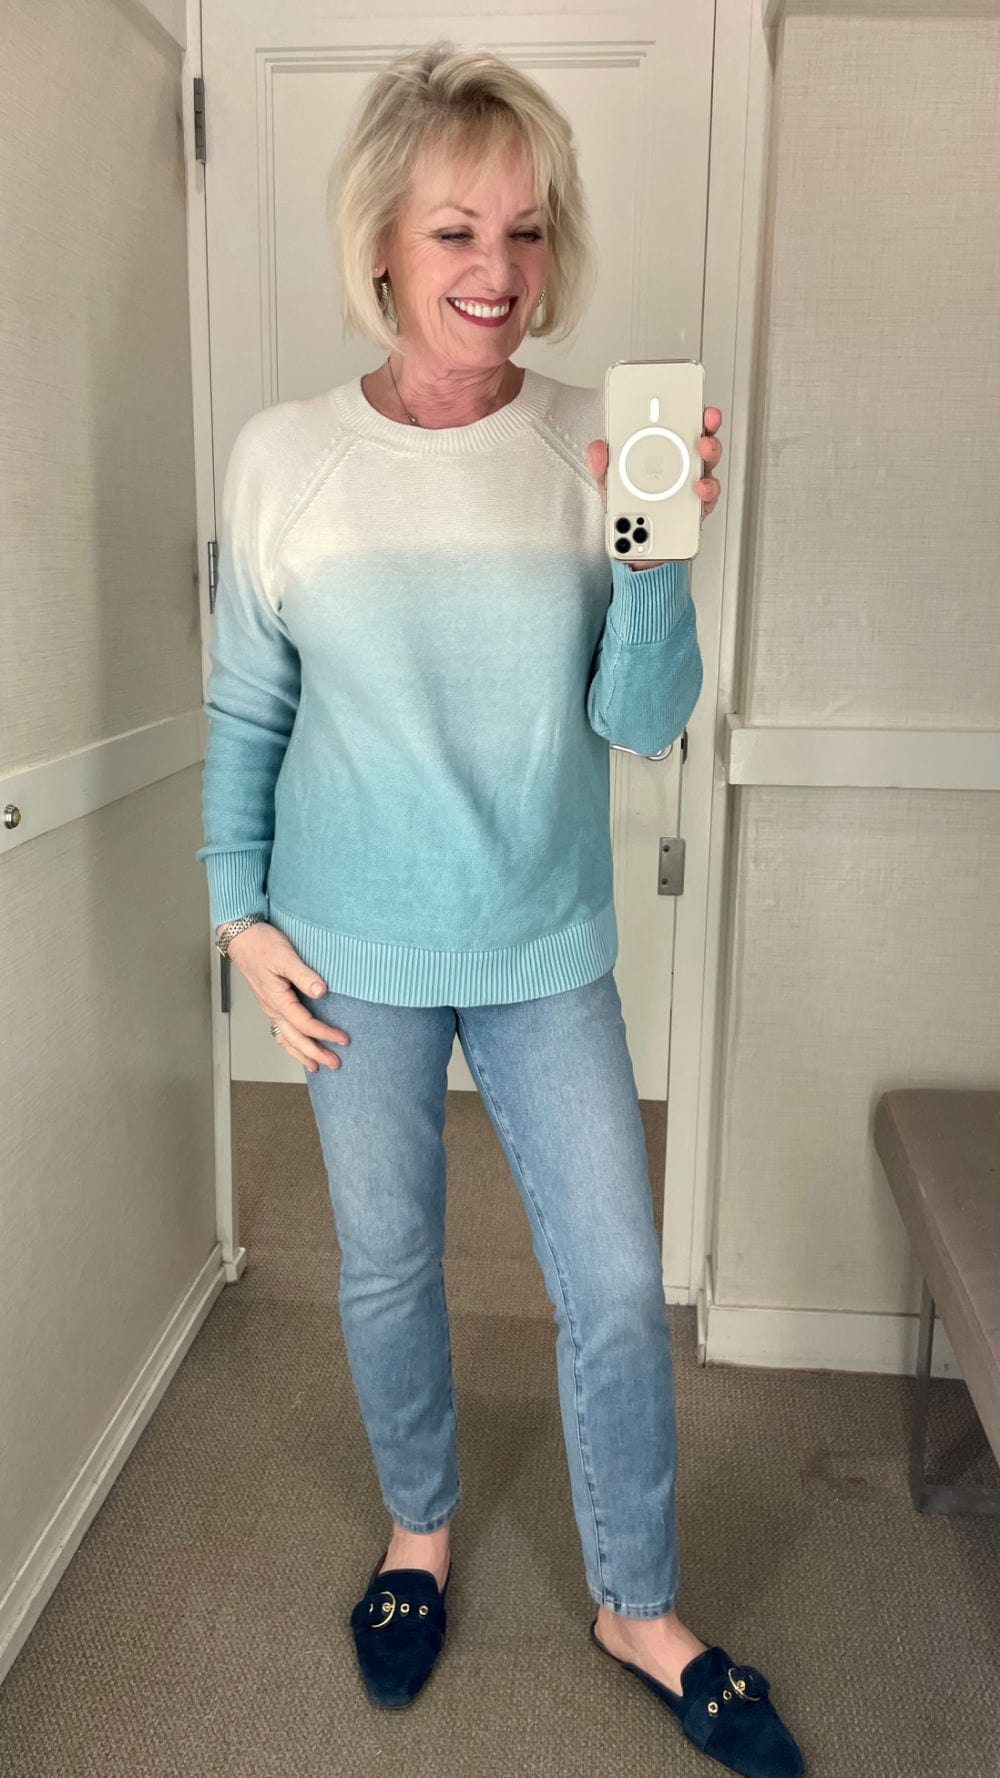 ombre sweater in pale blue spring color and pale blue jeans on woman at loft changing room